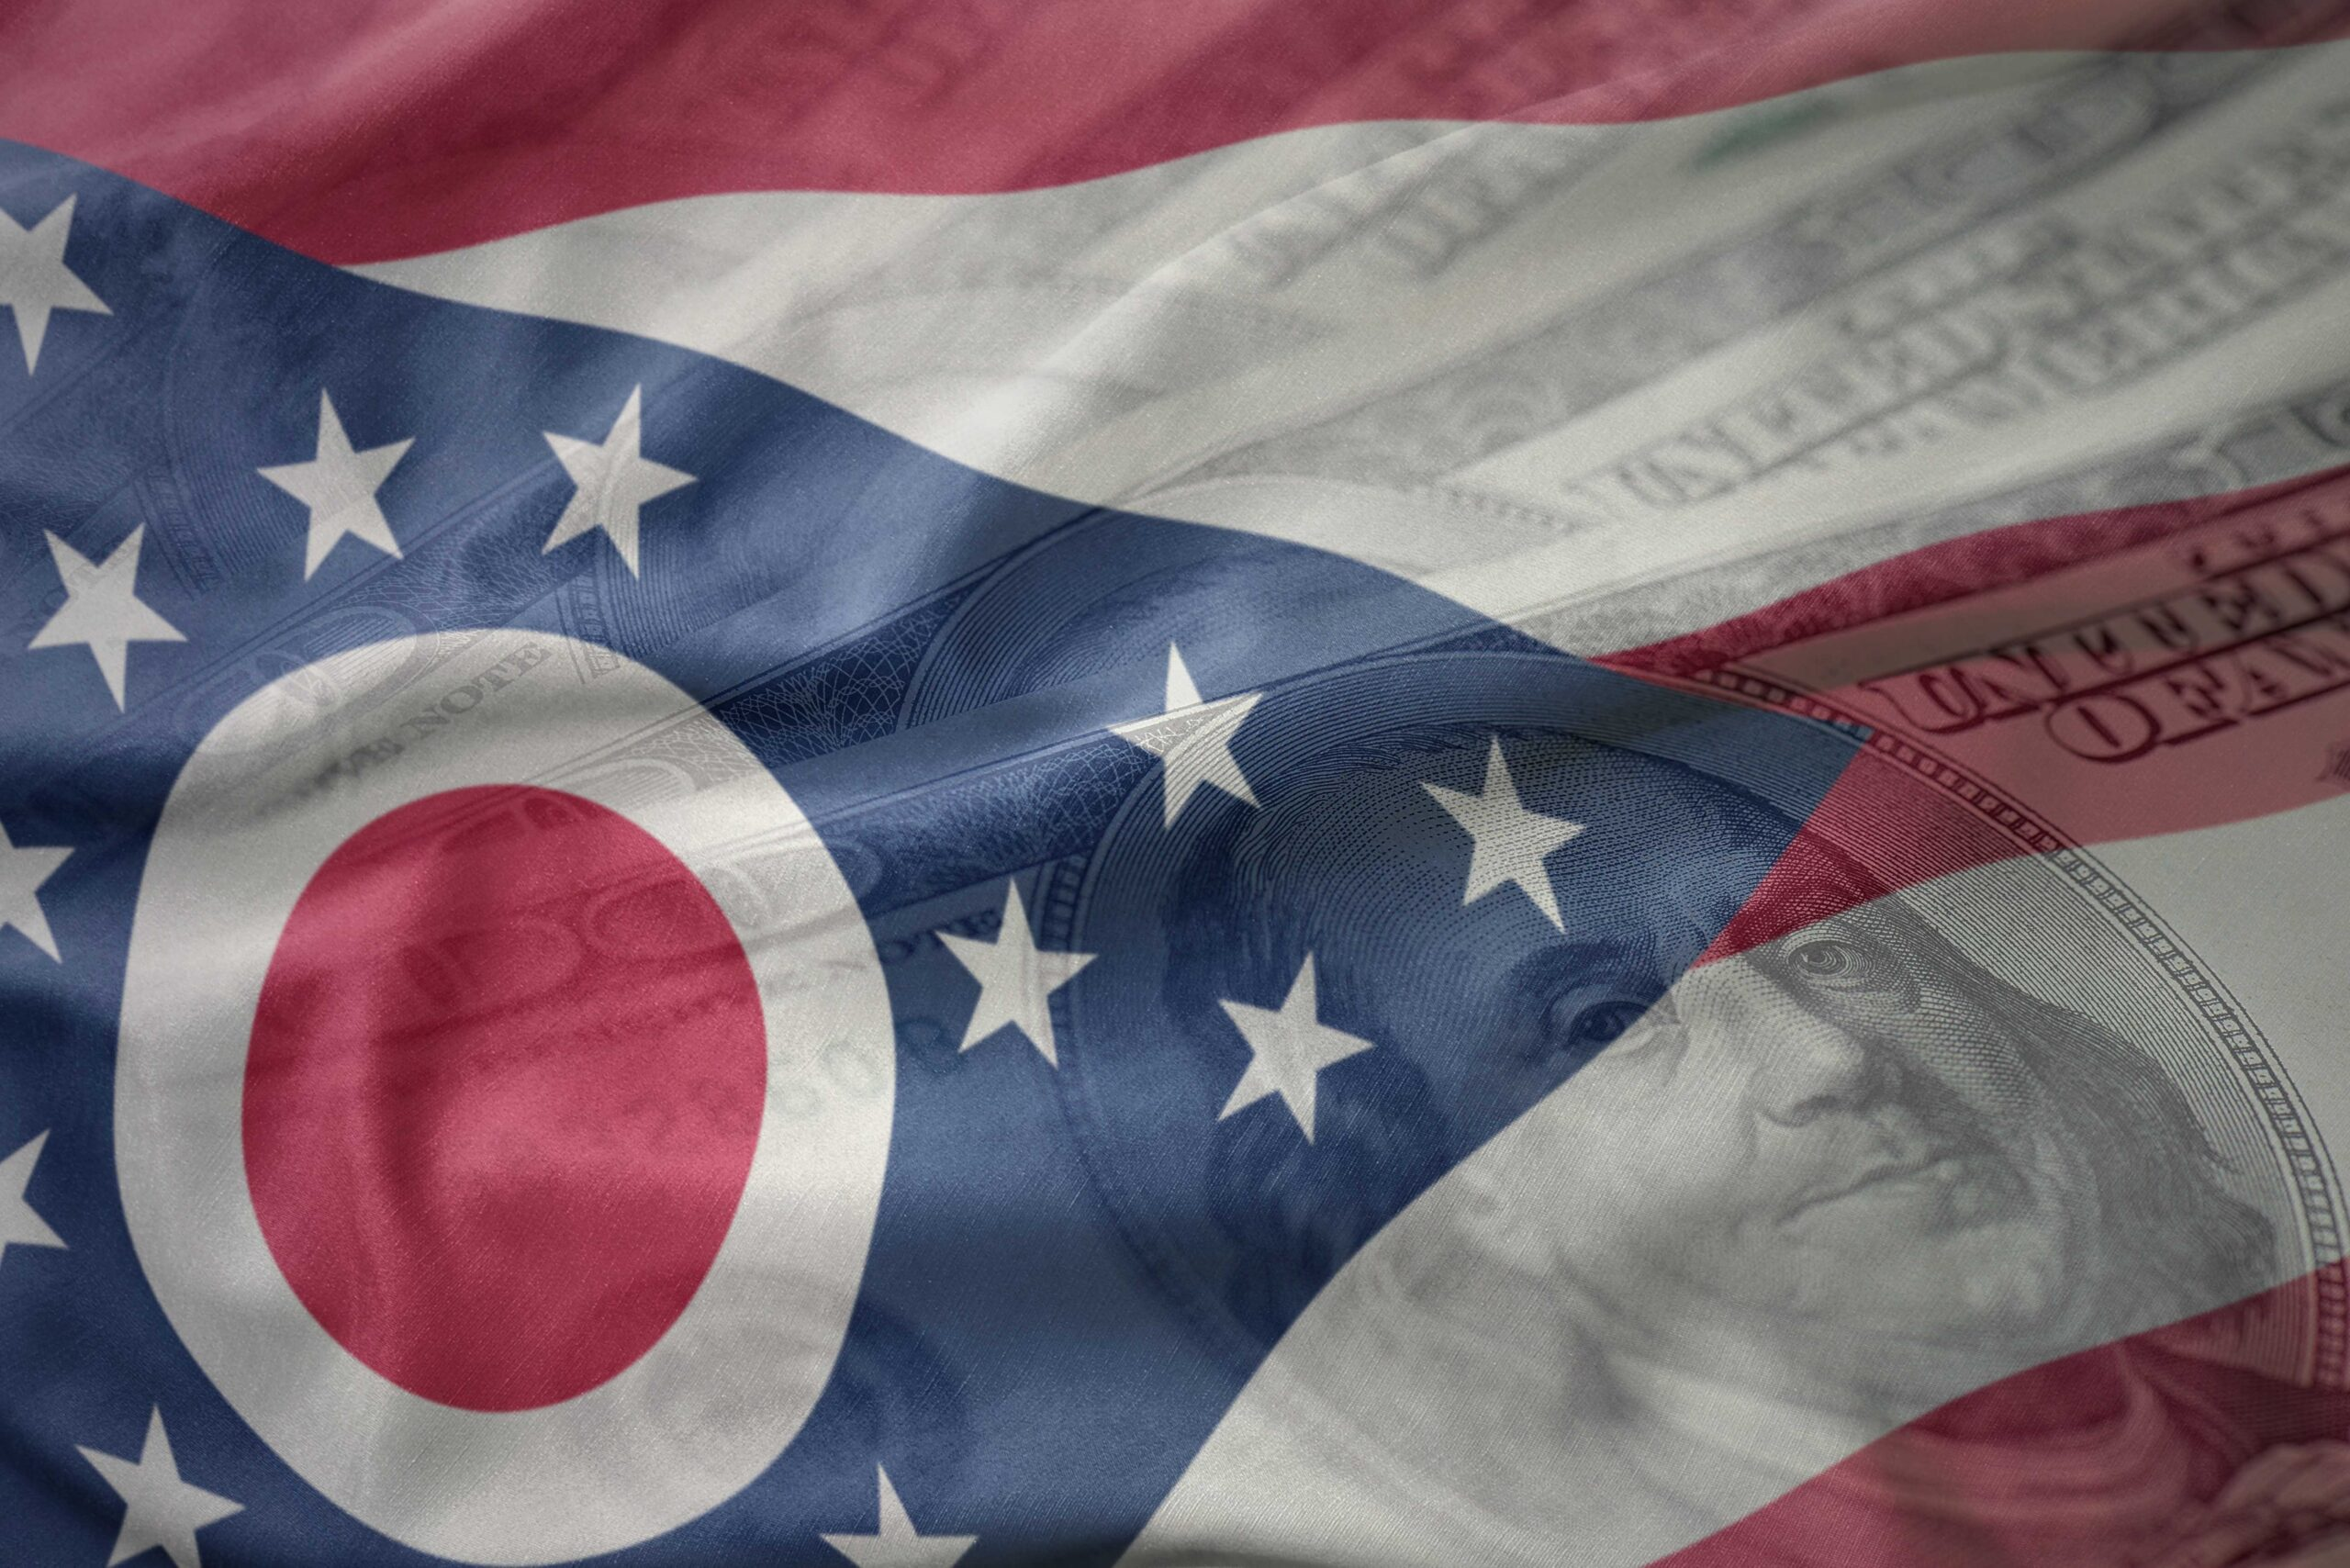 Ohio Workers' Compensation Estimated Annual Payroll Reduction